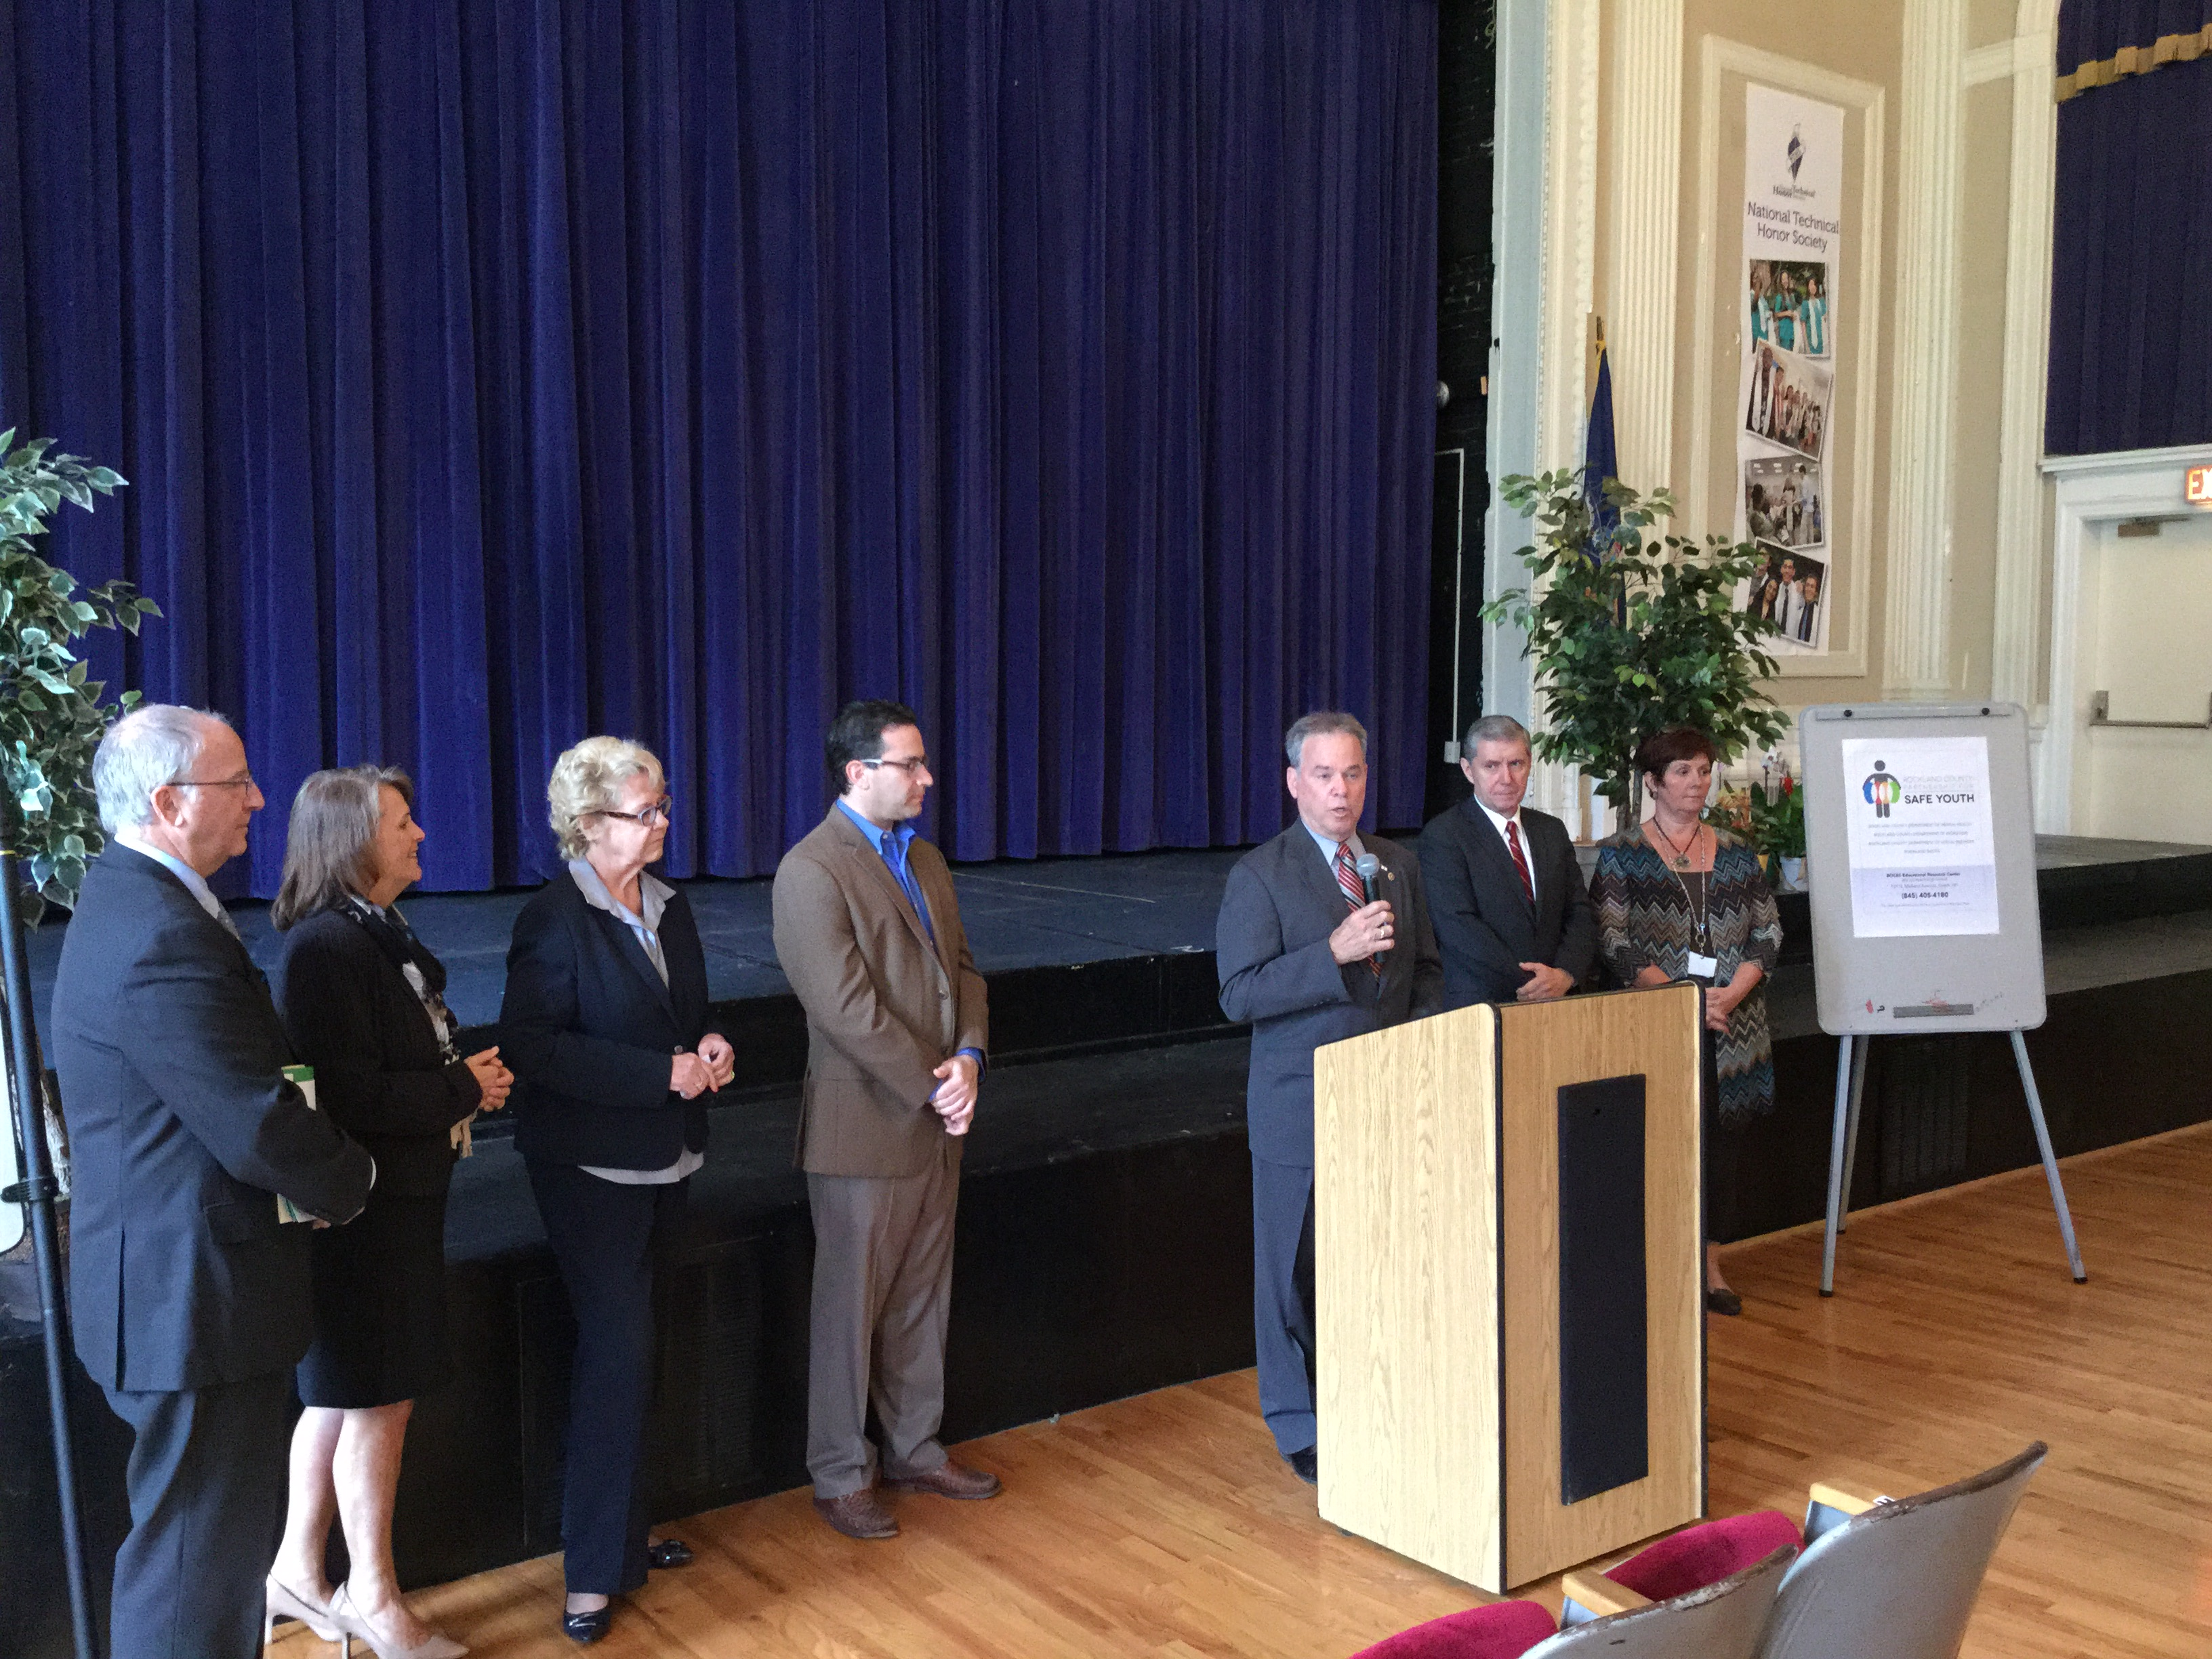 The Rockland County Partnership For Safe Youth